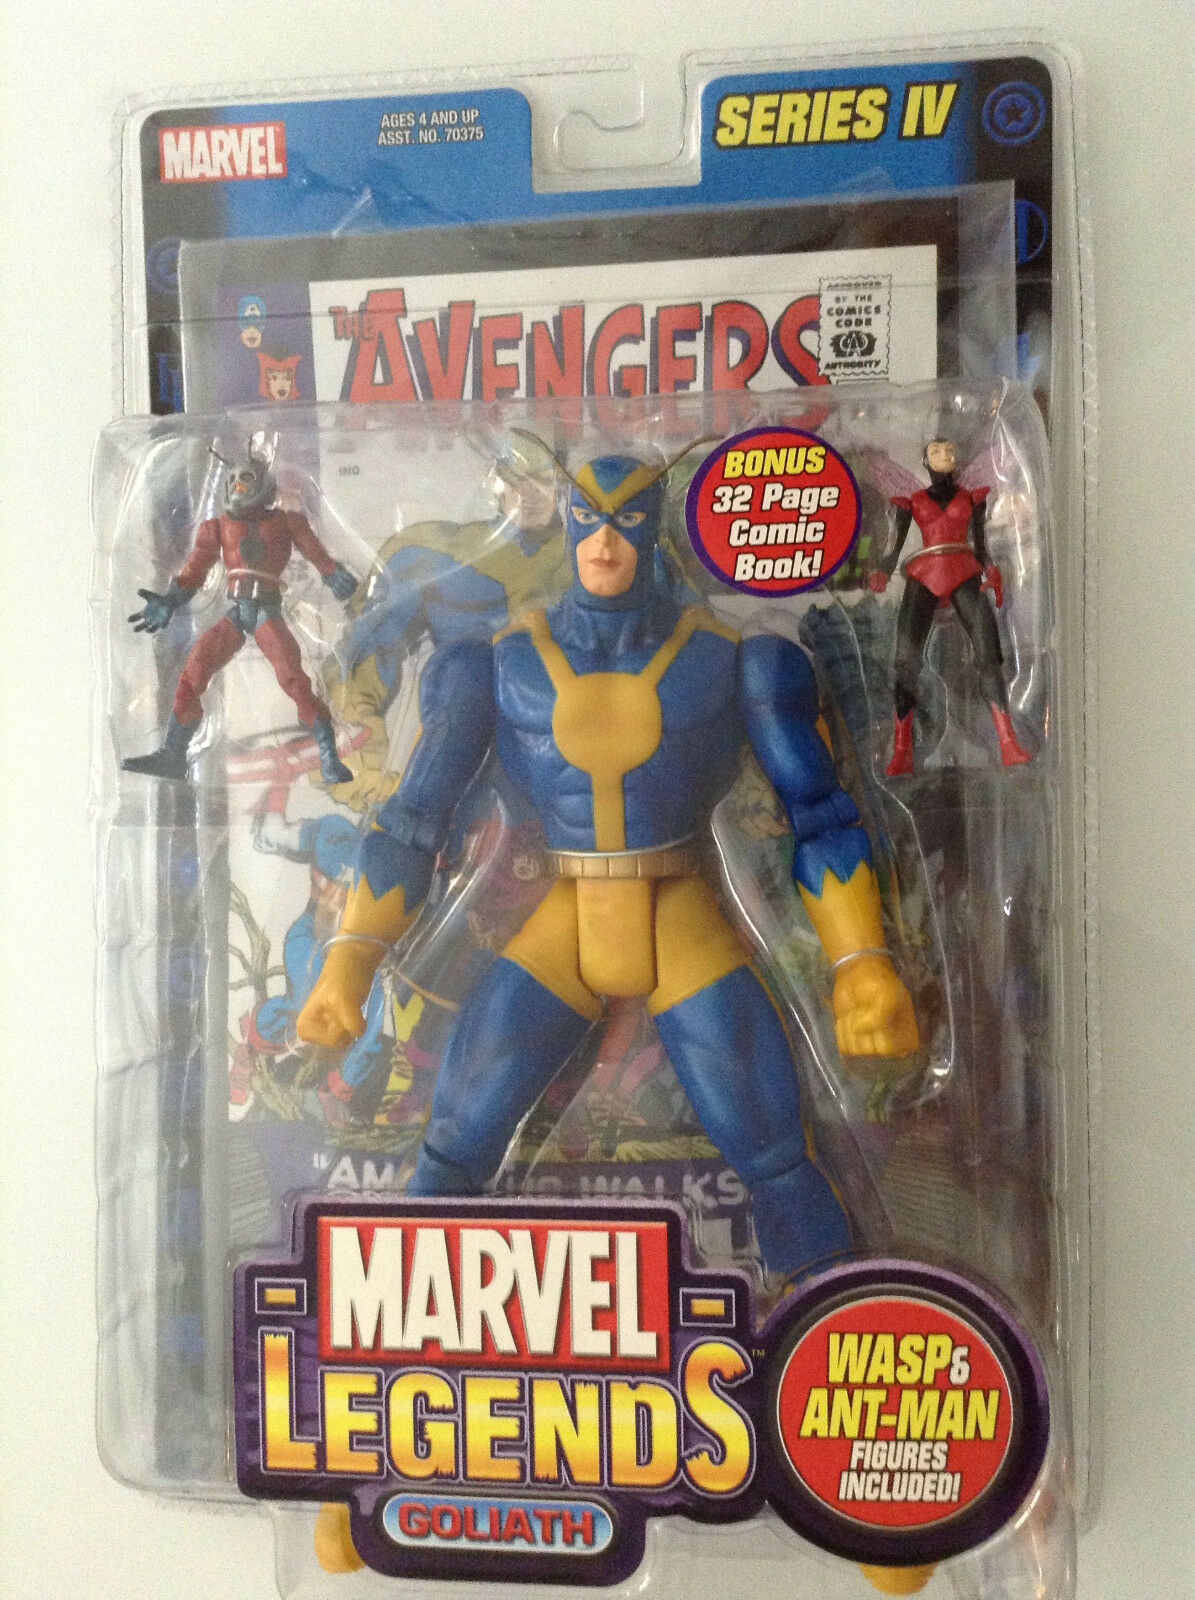 MARVEL LEGENDS SERIES IV GOLIATH ANT-MAN WASP VARIANT FIGURE INCENTIVE AVENGERS